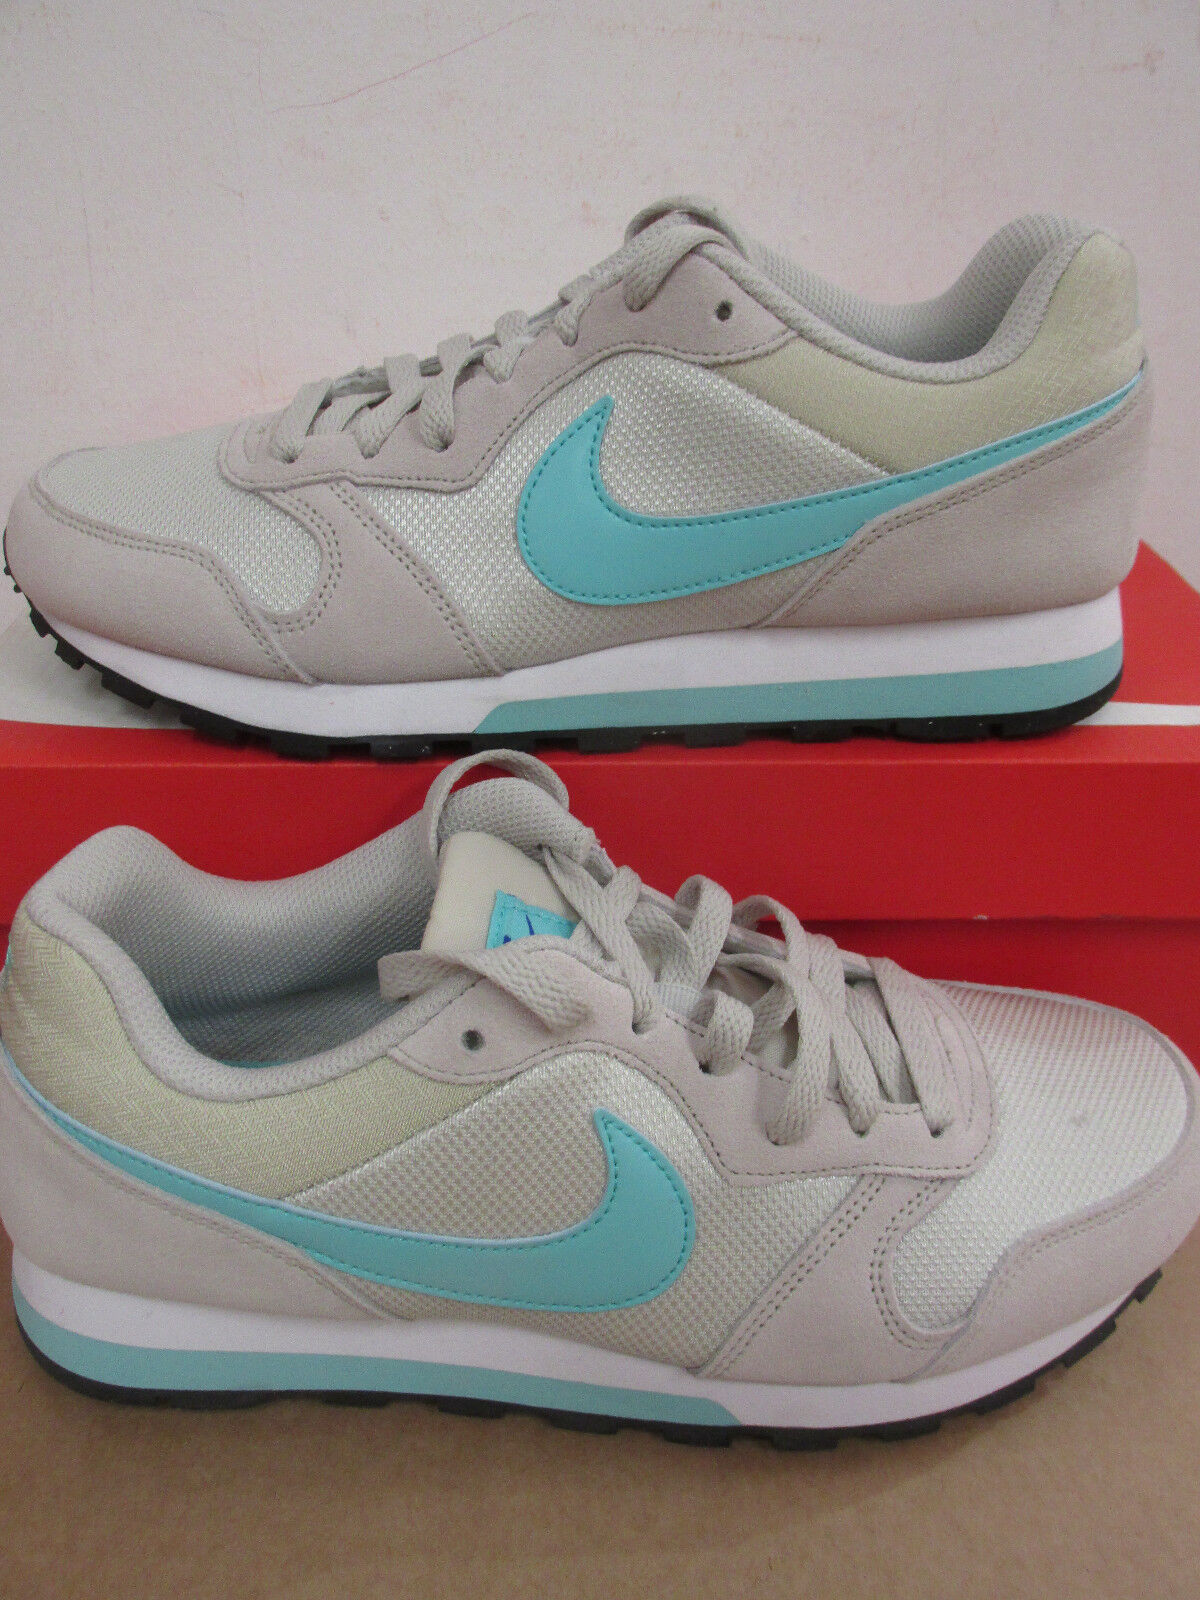 Nike Womens MD Runner 2 Trainers 749869 034 Sneakers Shoes CLEARANCE